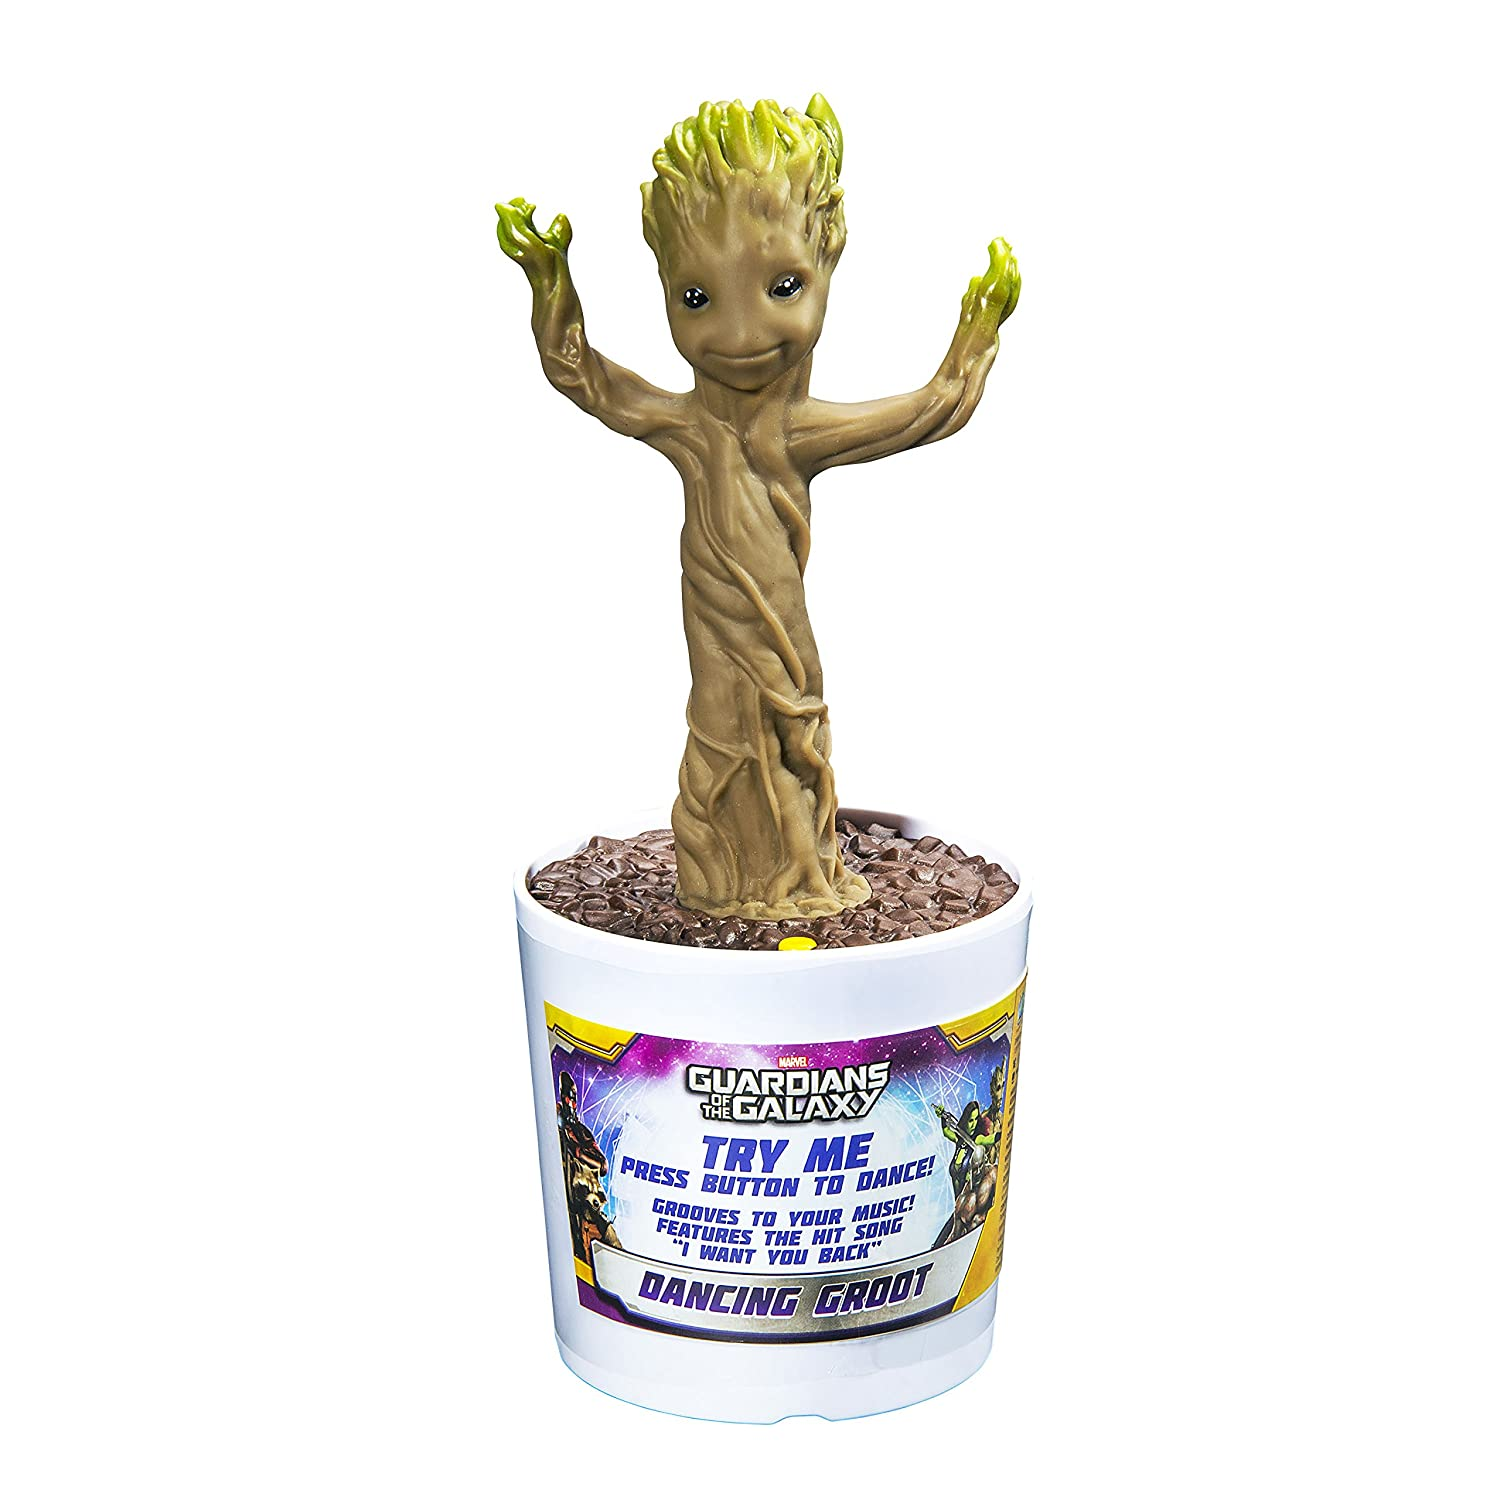 Zappies - Guardiani della galassia, Figurina elettrica di Groot danzante Kid Designs GG-408.UM